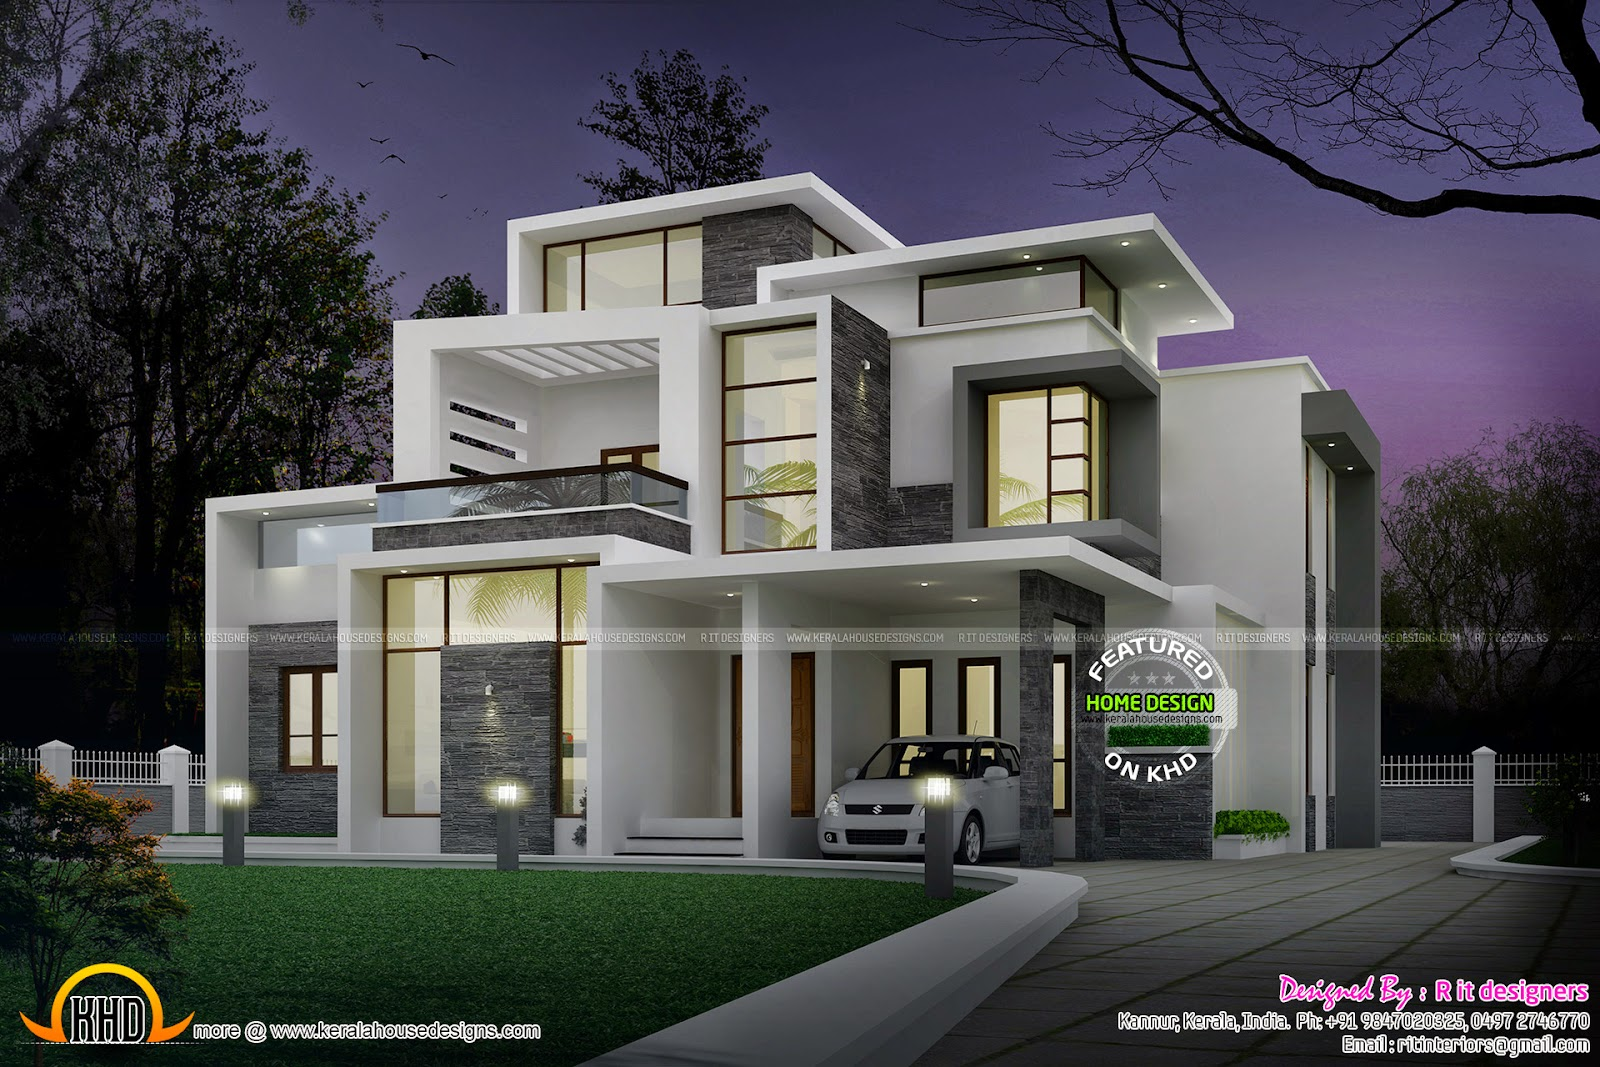 Grand contemporary home design kerala home design and for Top 10 house design